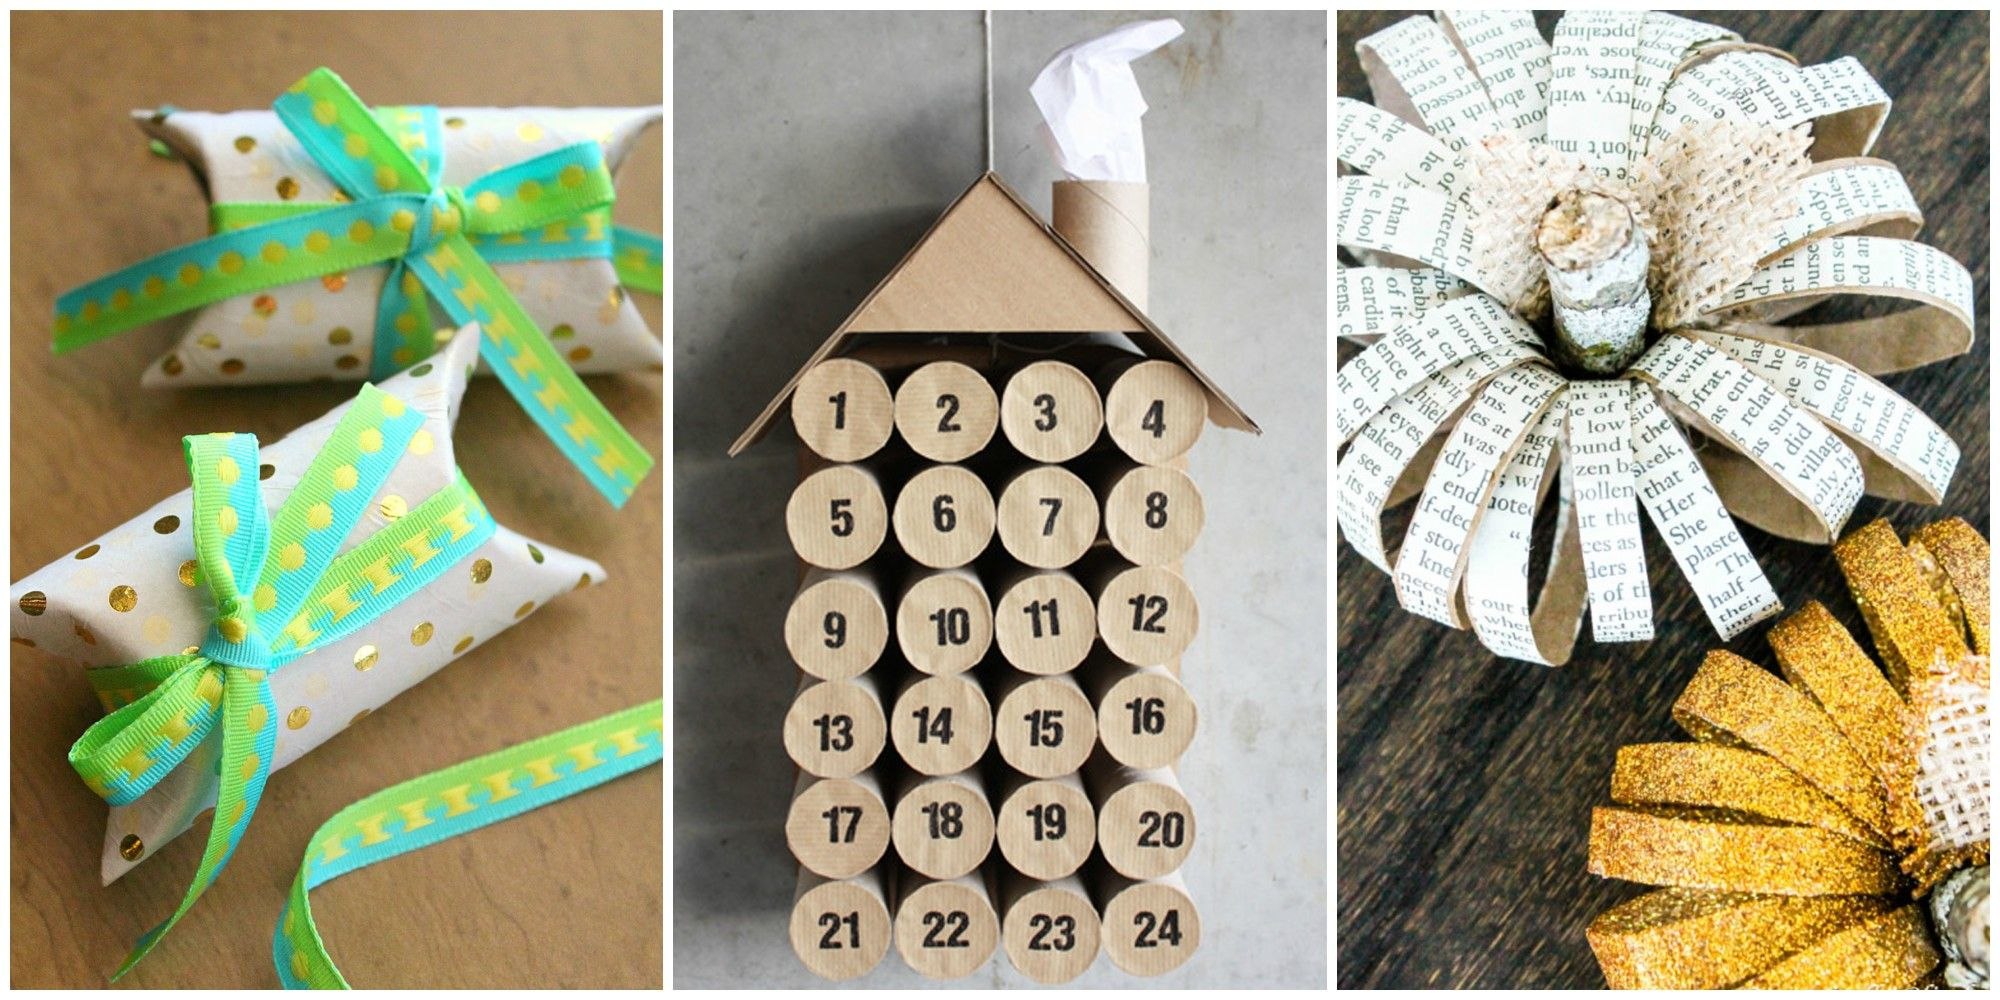 12 Best Toilet Paper Roll Crafts For Adults And Kids Diy Ideas